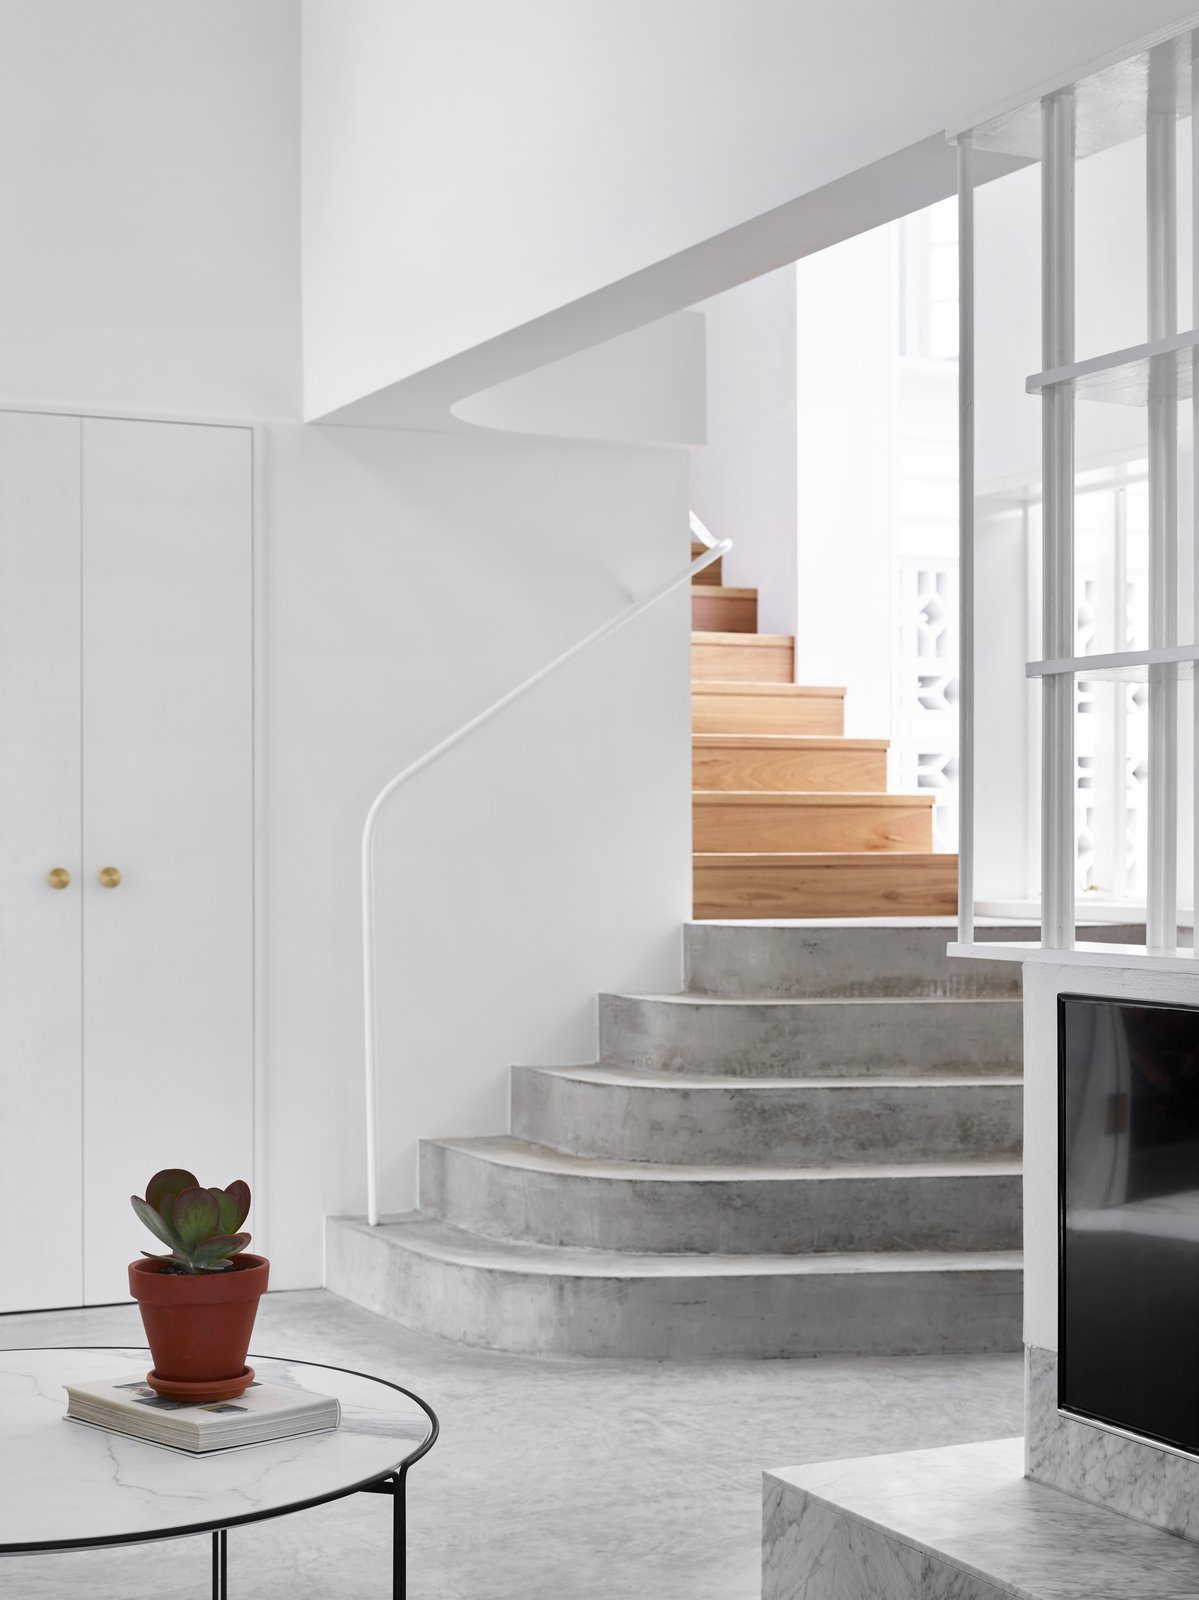 Staircase, Concrete Tread, Metal Railing, and Wood Tread Concrete and timber meet again on the stairs that lead to the upper level.  Photos from A Small Australian Cottage Becomes an Airy Gathering Hub